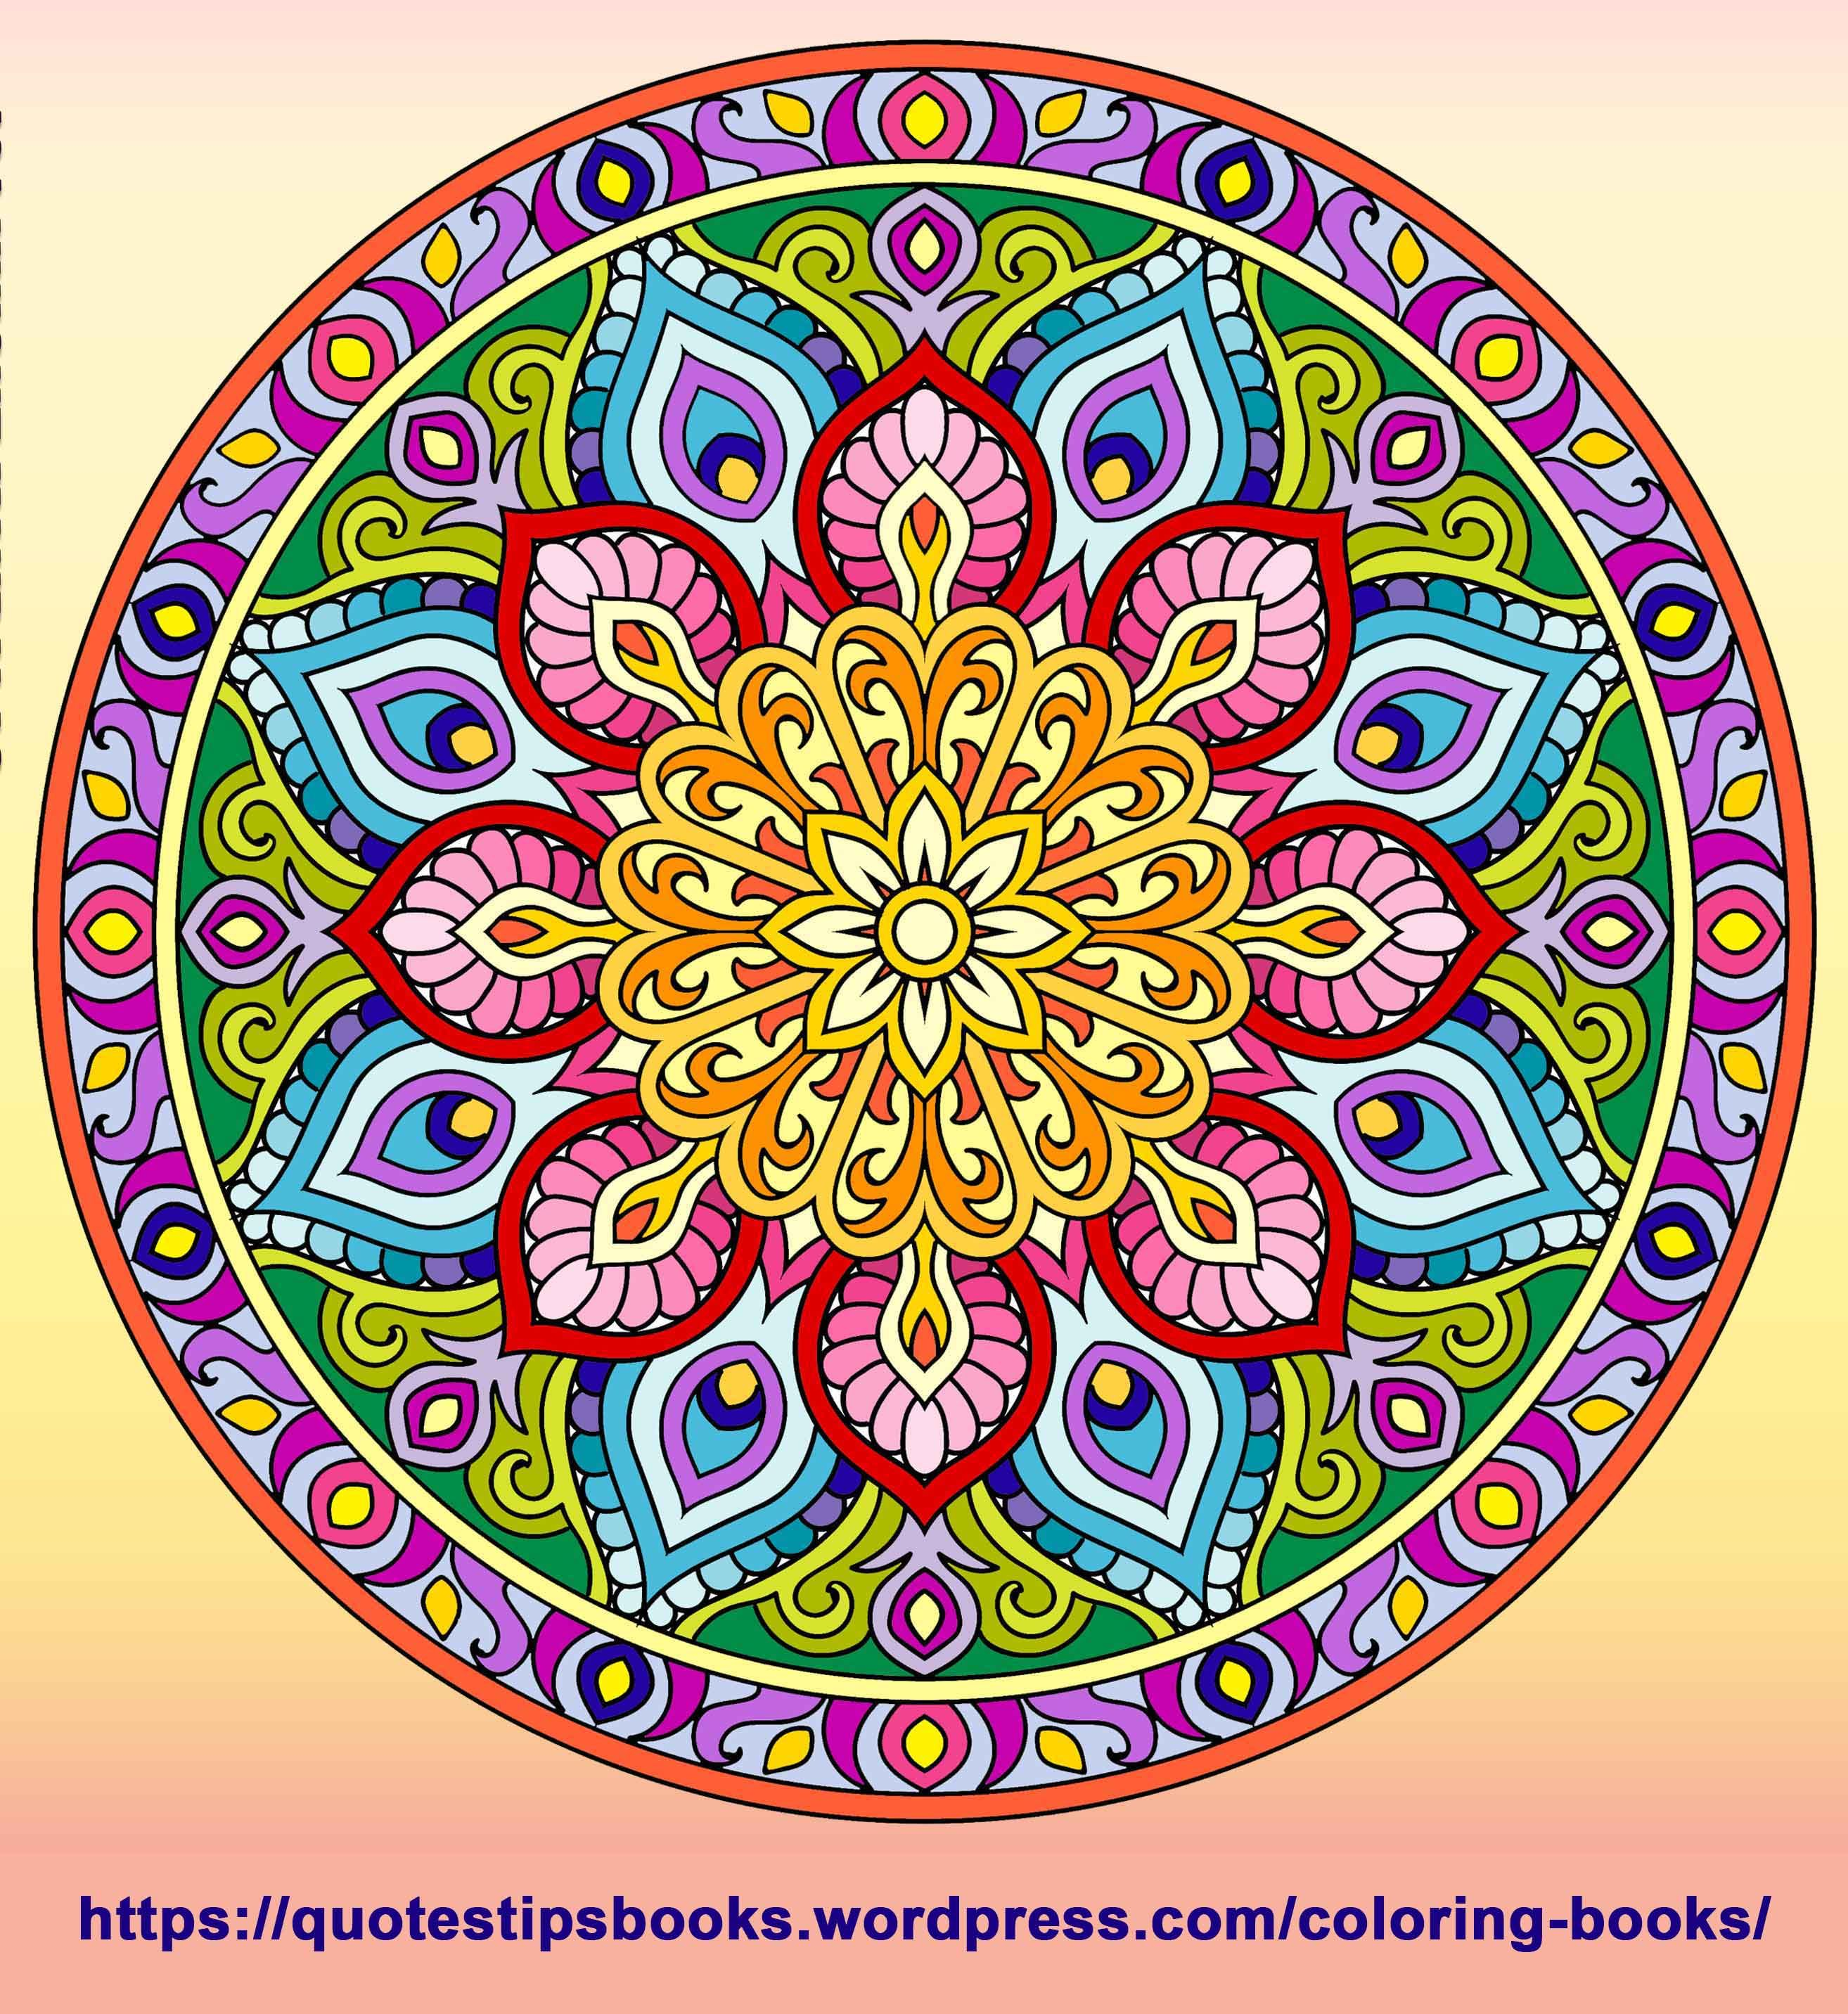 Coloring Books Mandala Coloring Books Mandala Coloring Coloring Books